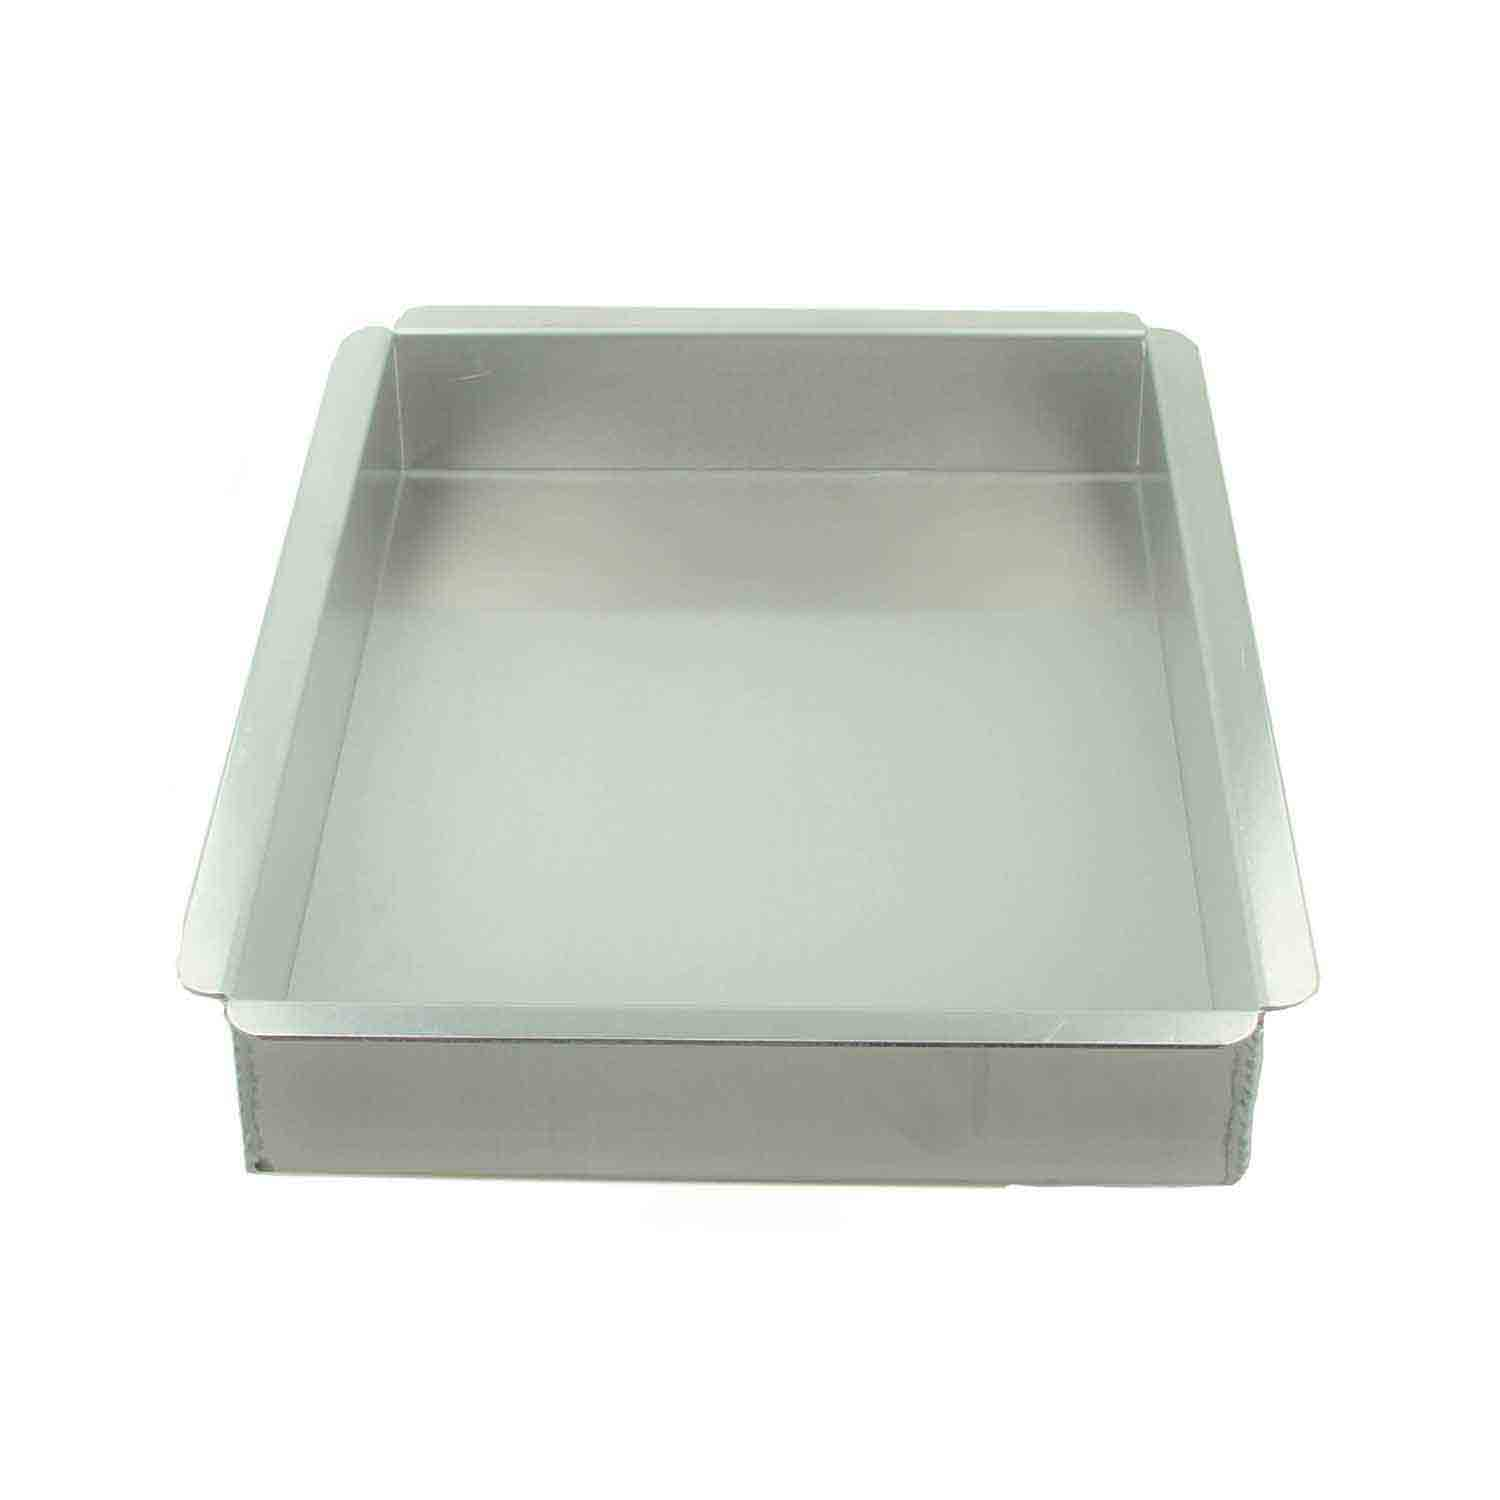 "9 x 13 x 2"" Magic Line Sheet Cake Pan"